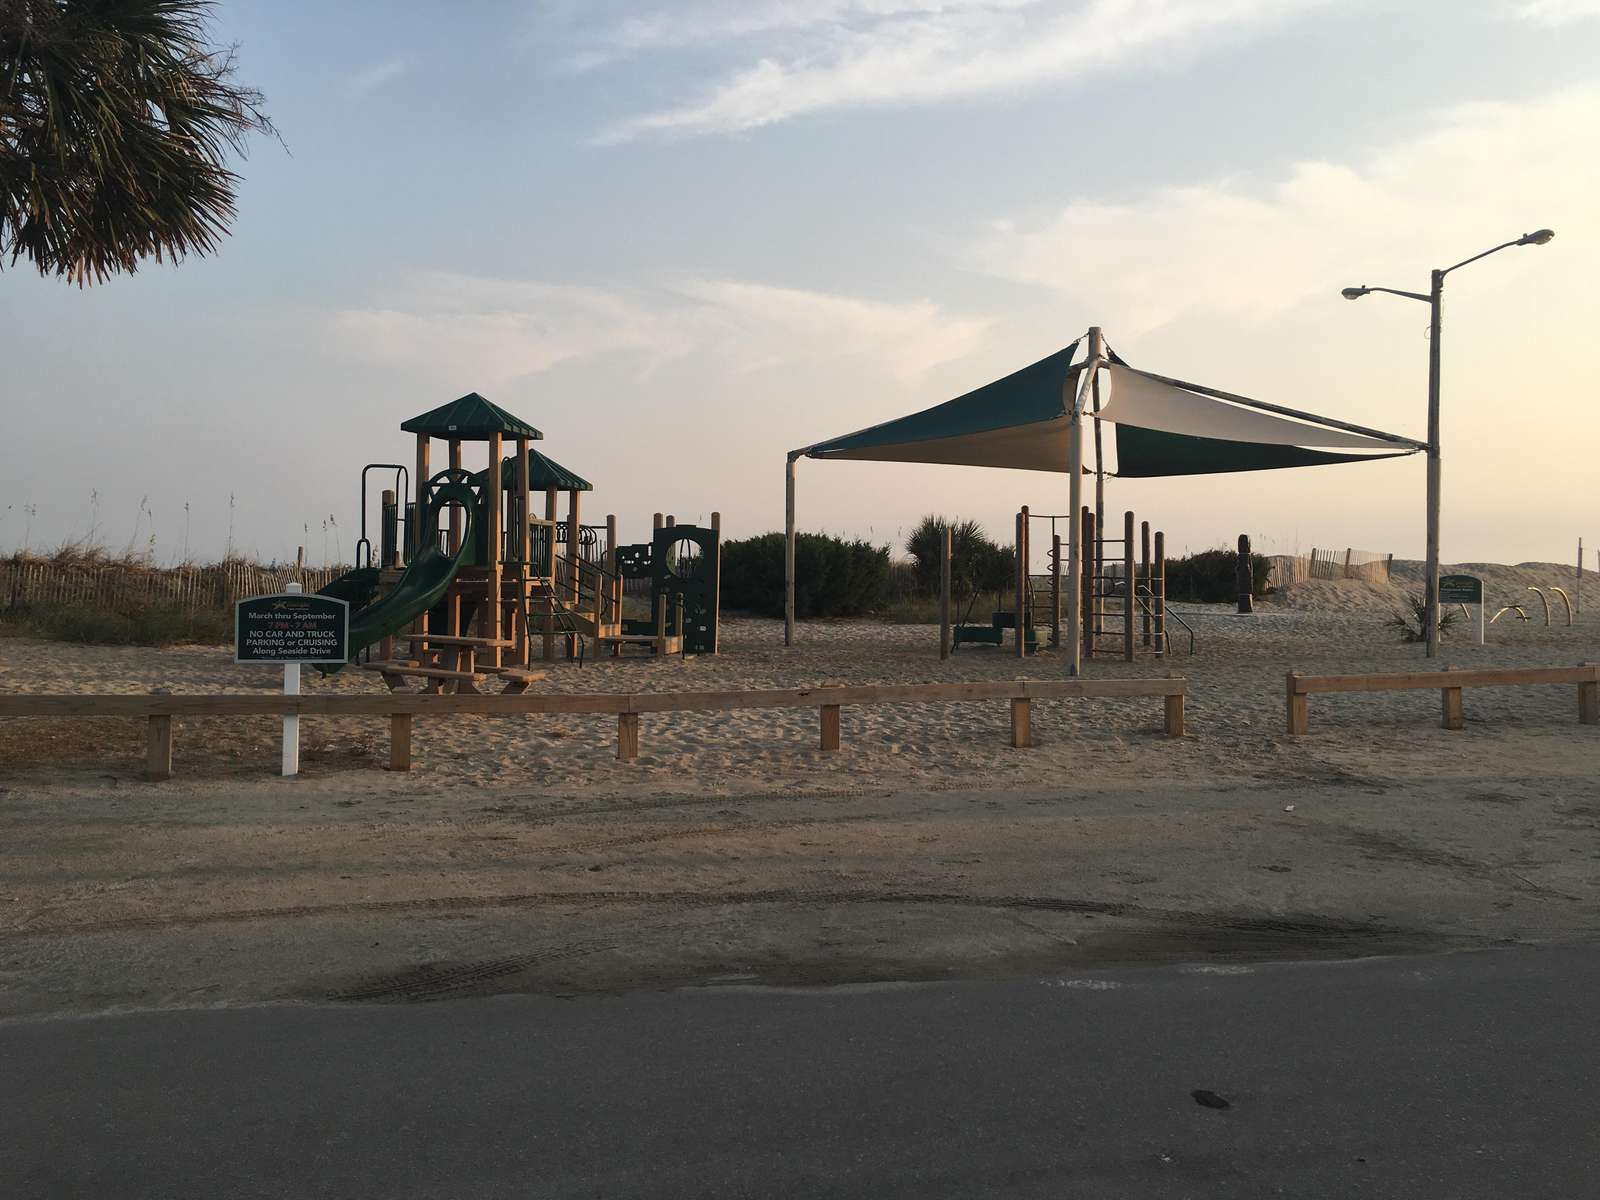 1 of 2 playgrounds